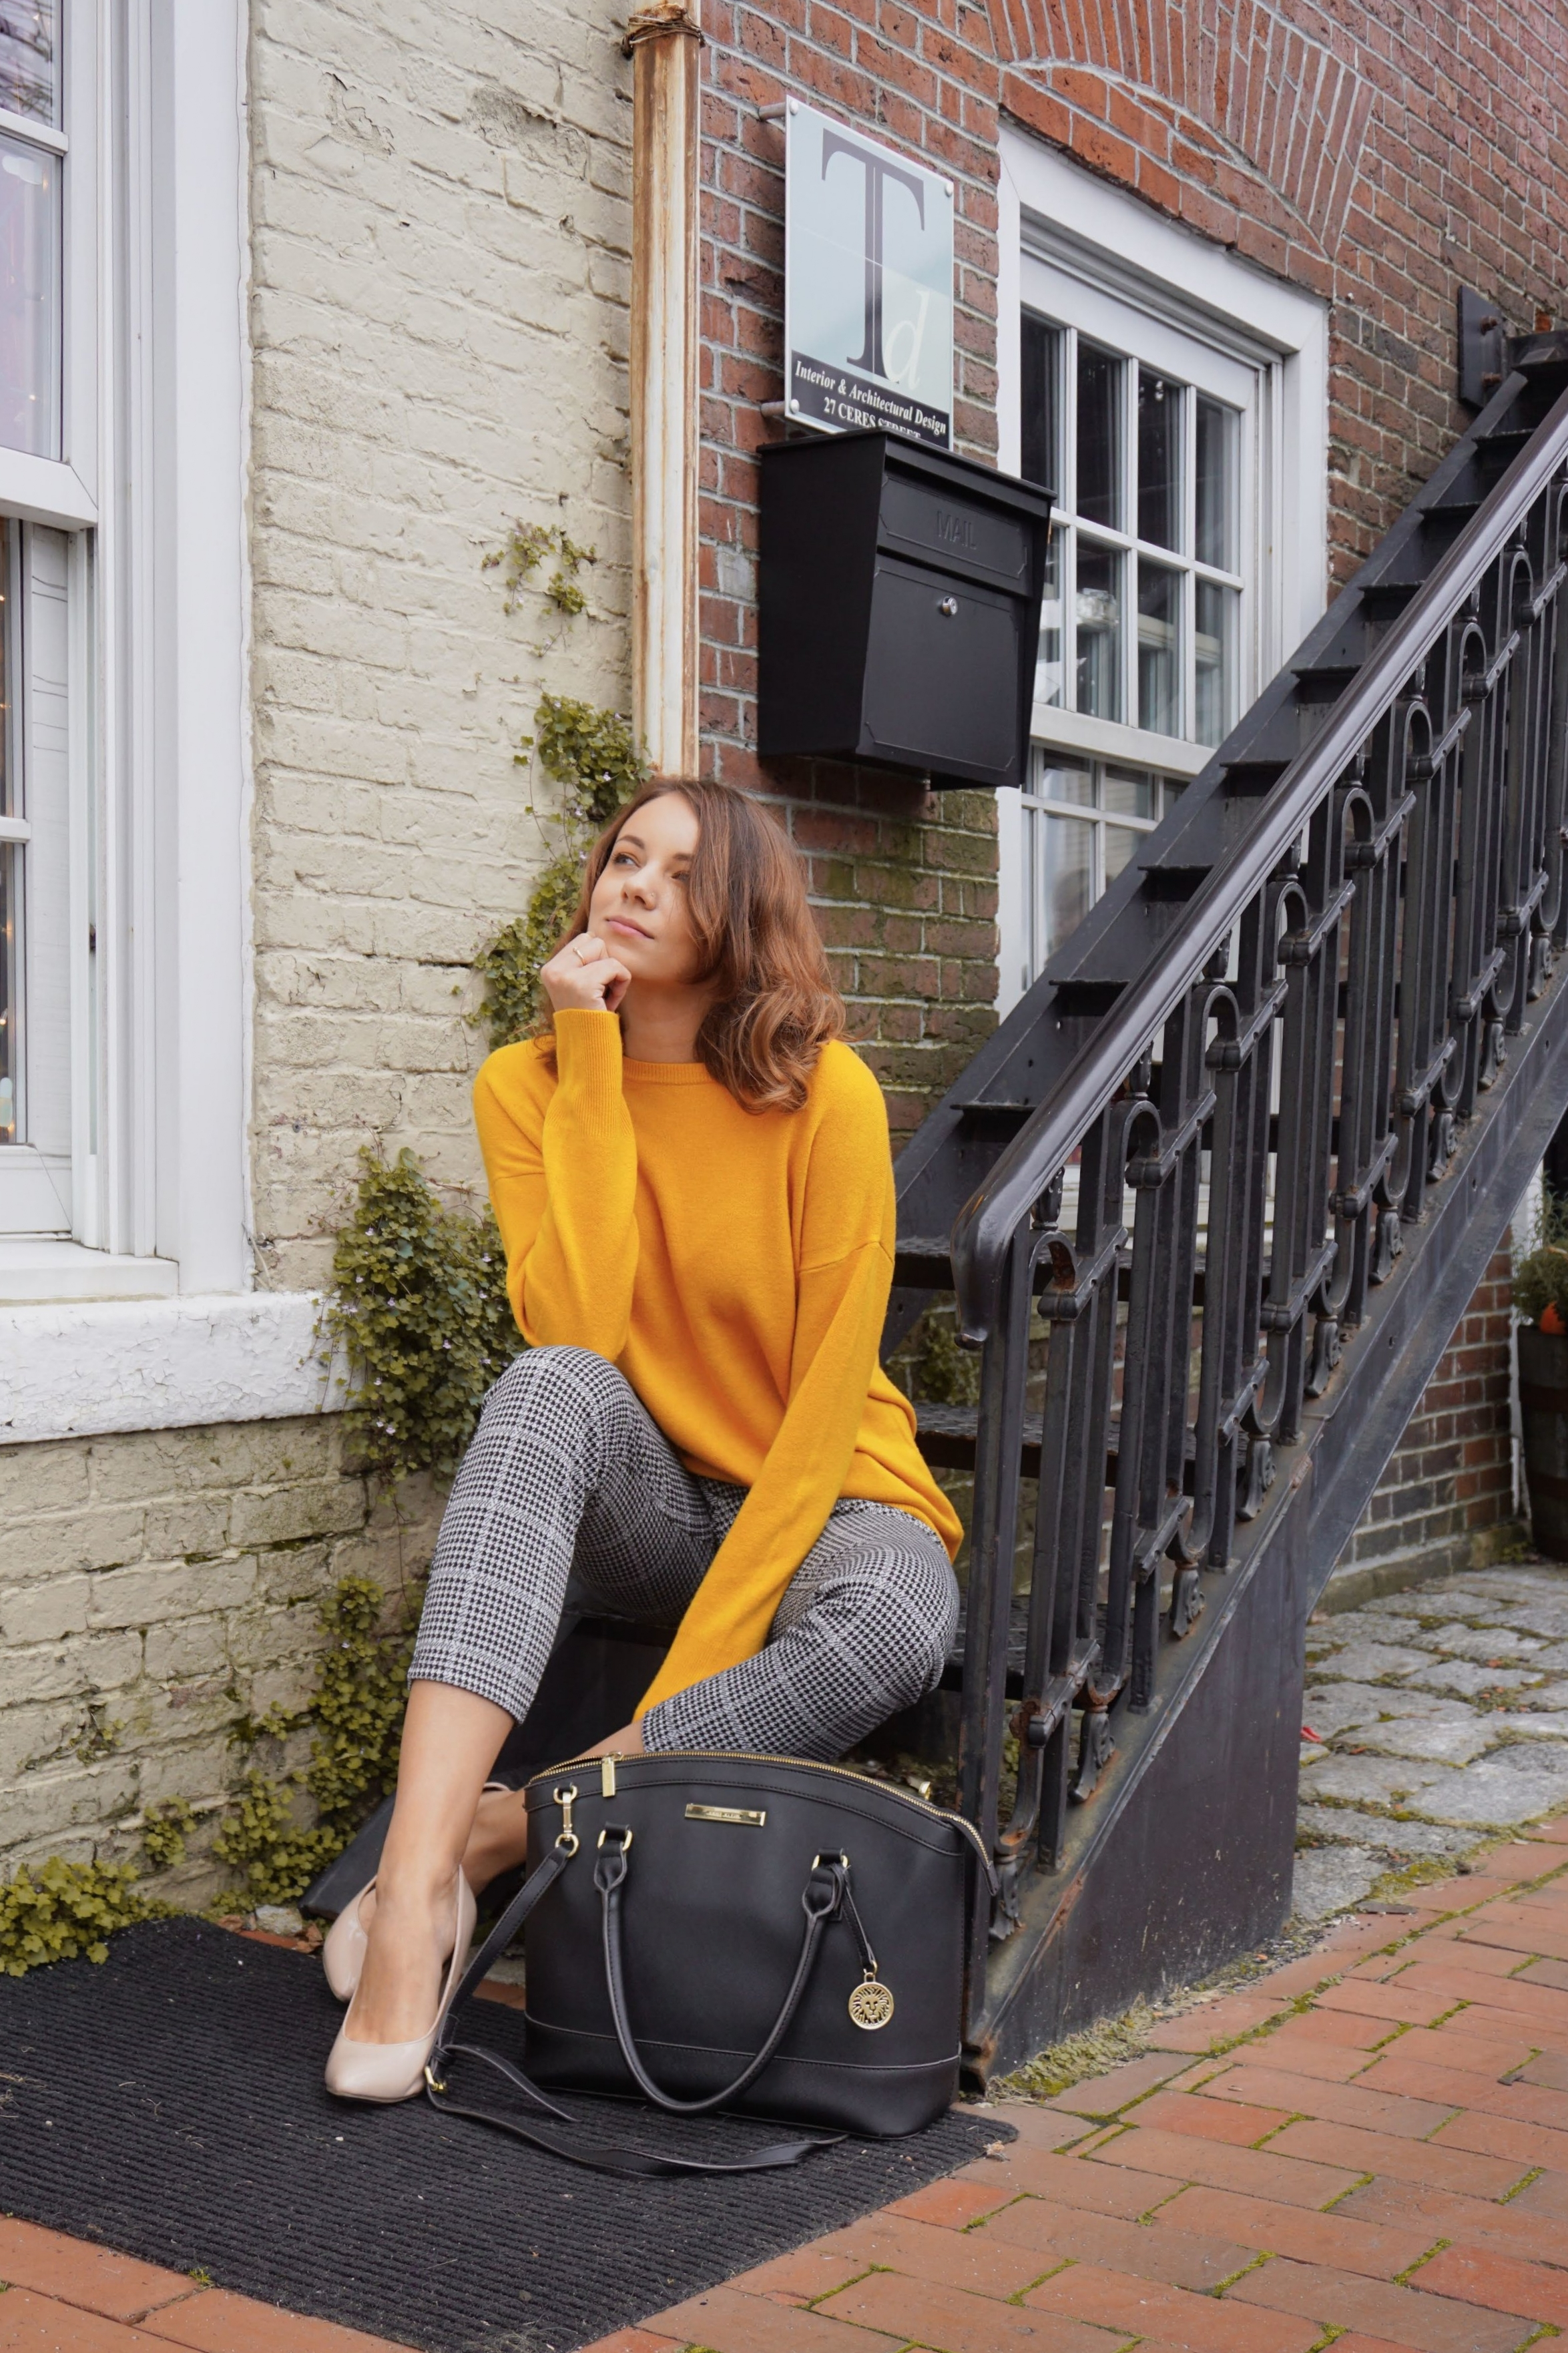 A fashion blogger sitting on steps near a building wearing a mustard sweater, black and white pants, nude pumps.